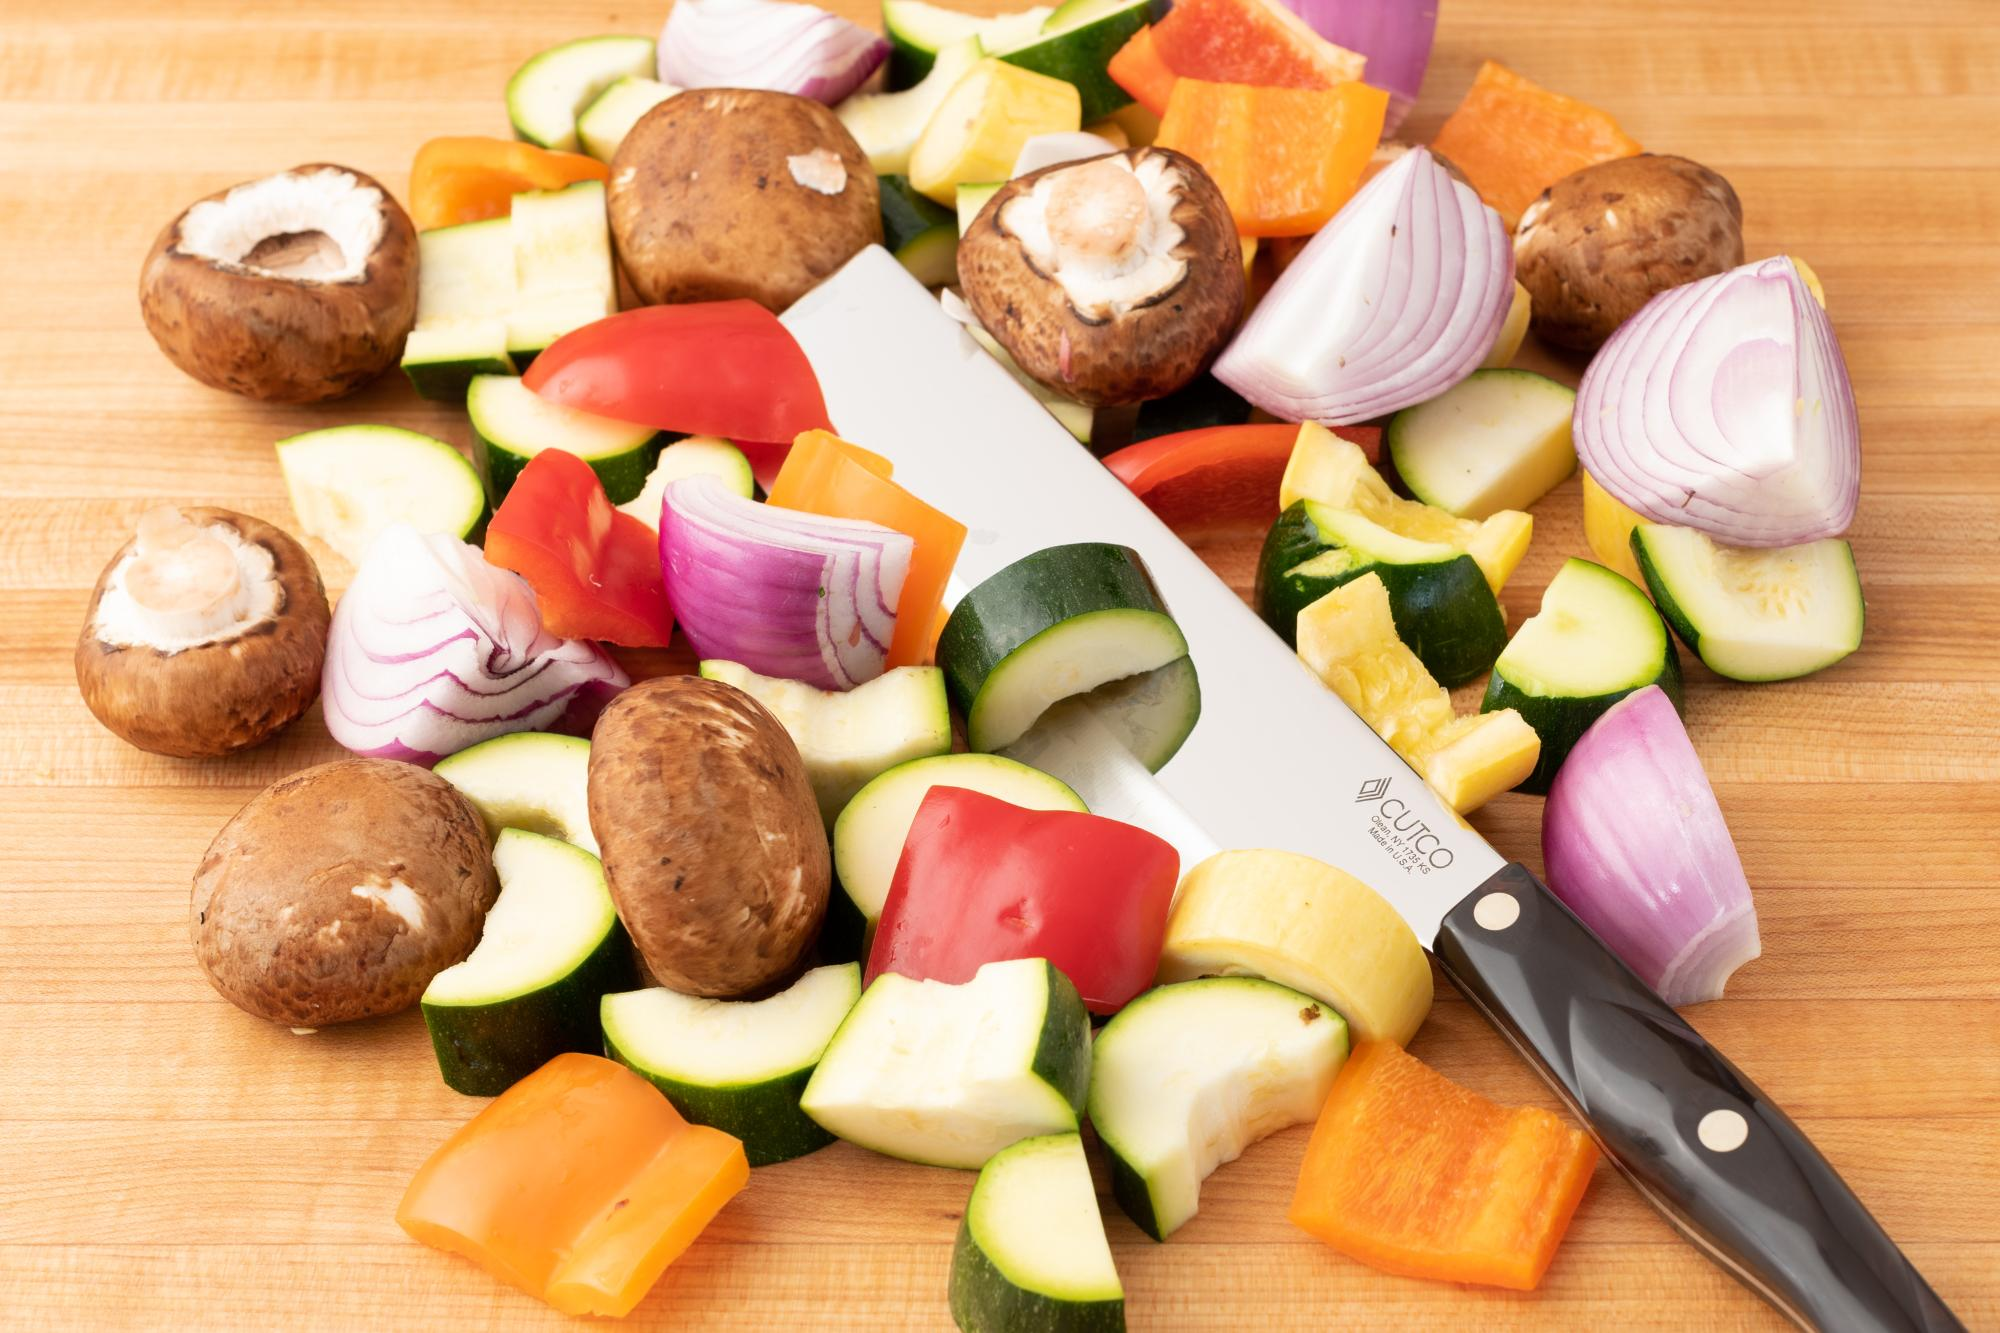 The Vegetable Knife handles the prep work with ease.